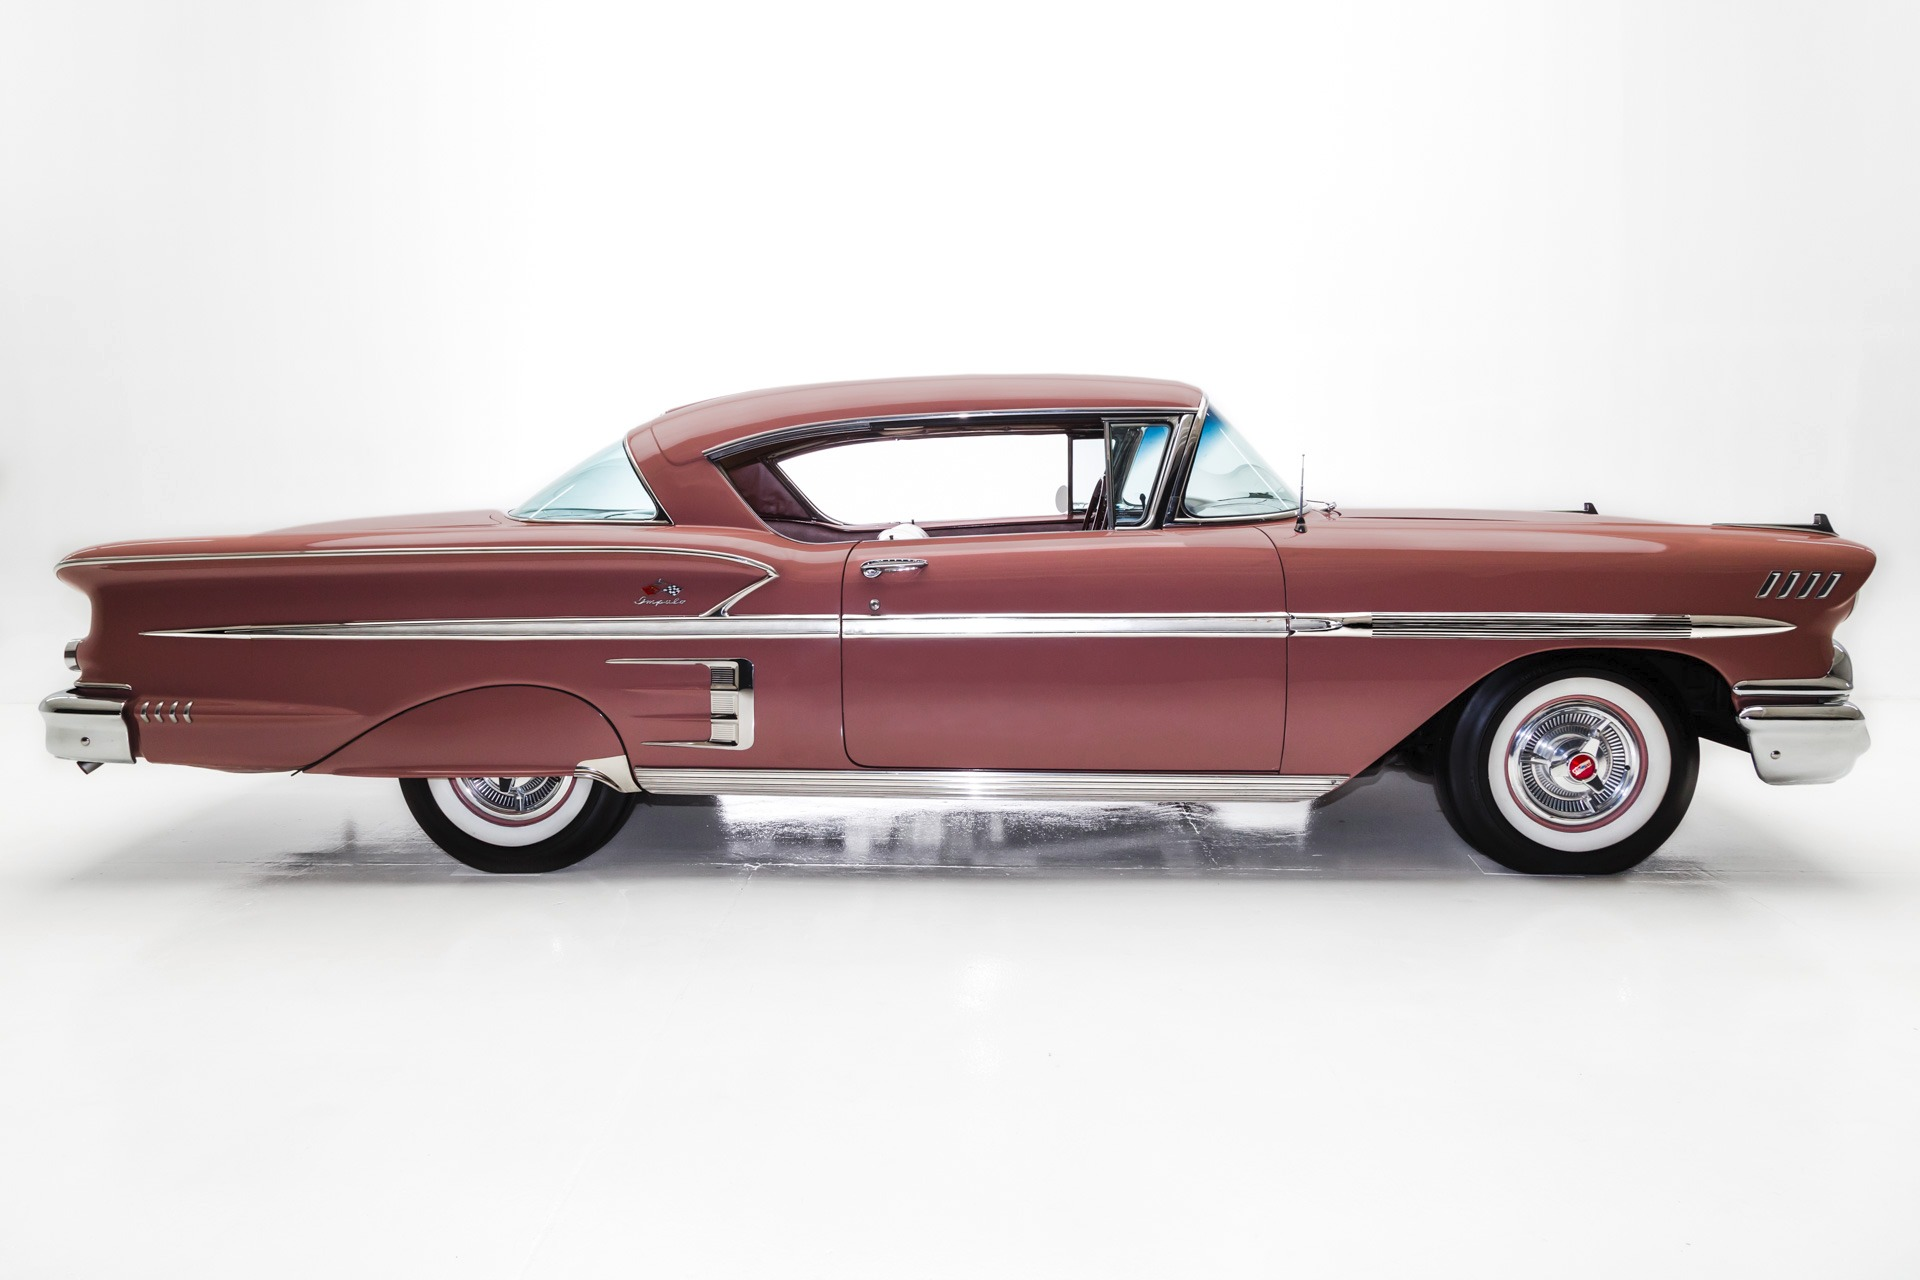 For Sale Used 1958 Chevrolet Impala Coral (Time Bubble Car) | American Dream Machines Des Moines IA 50309